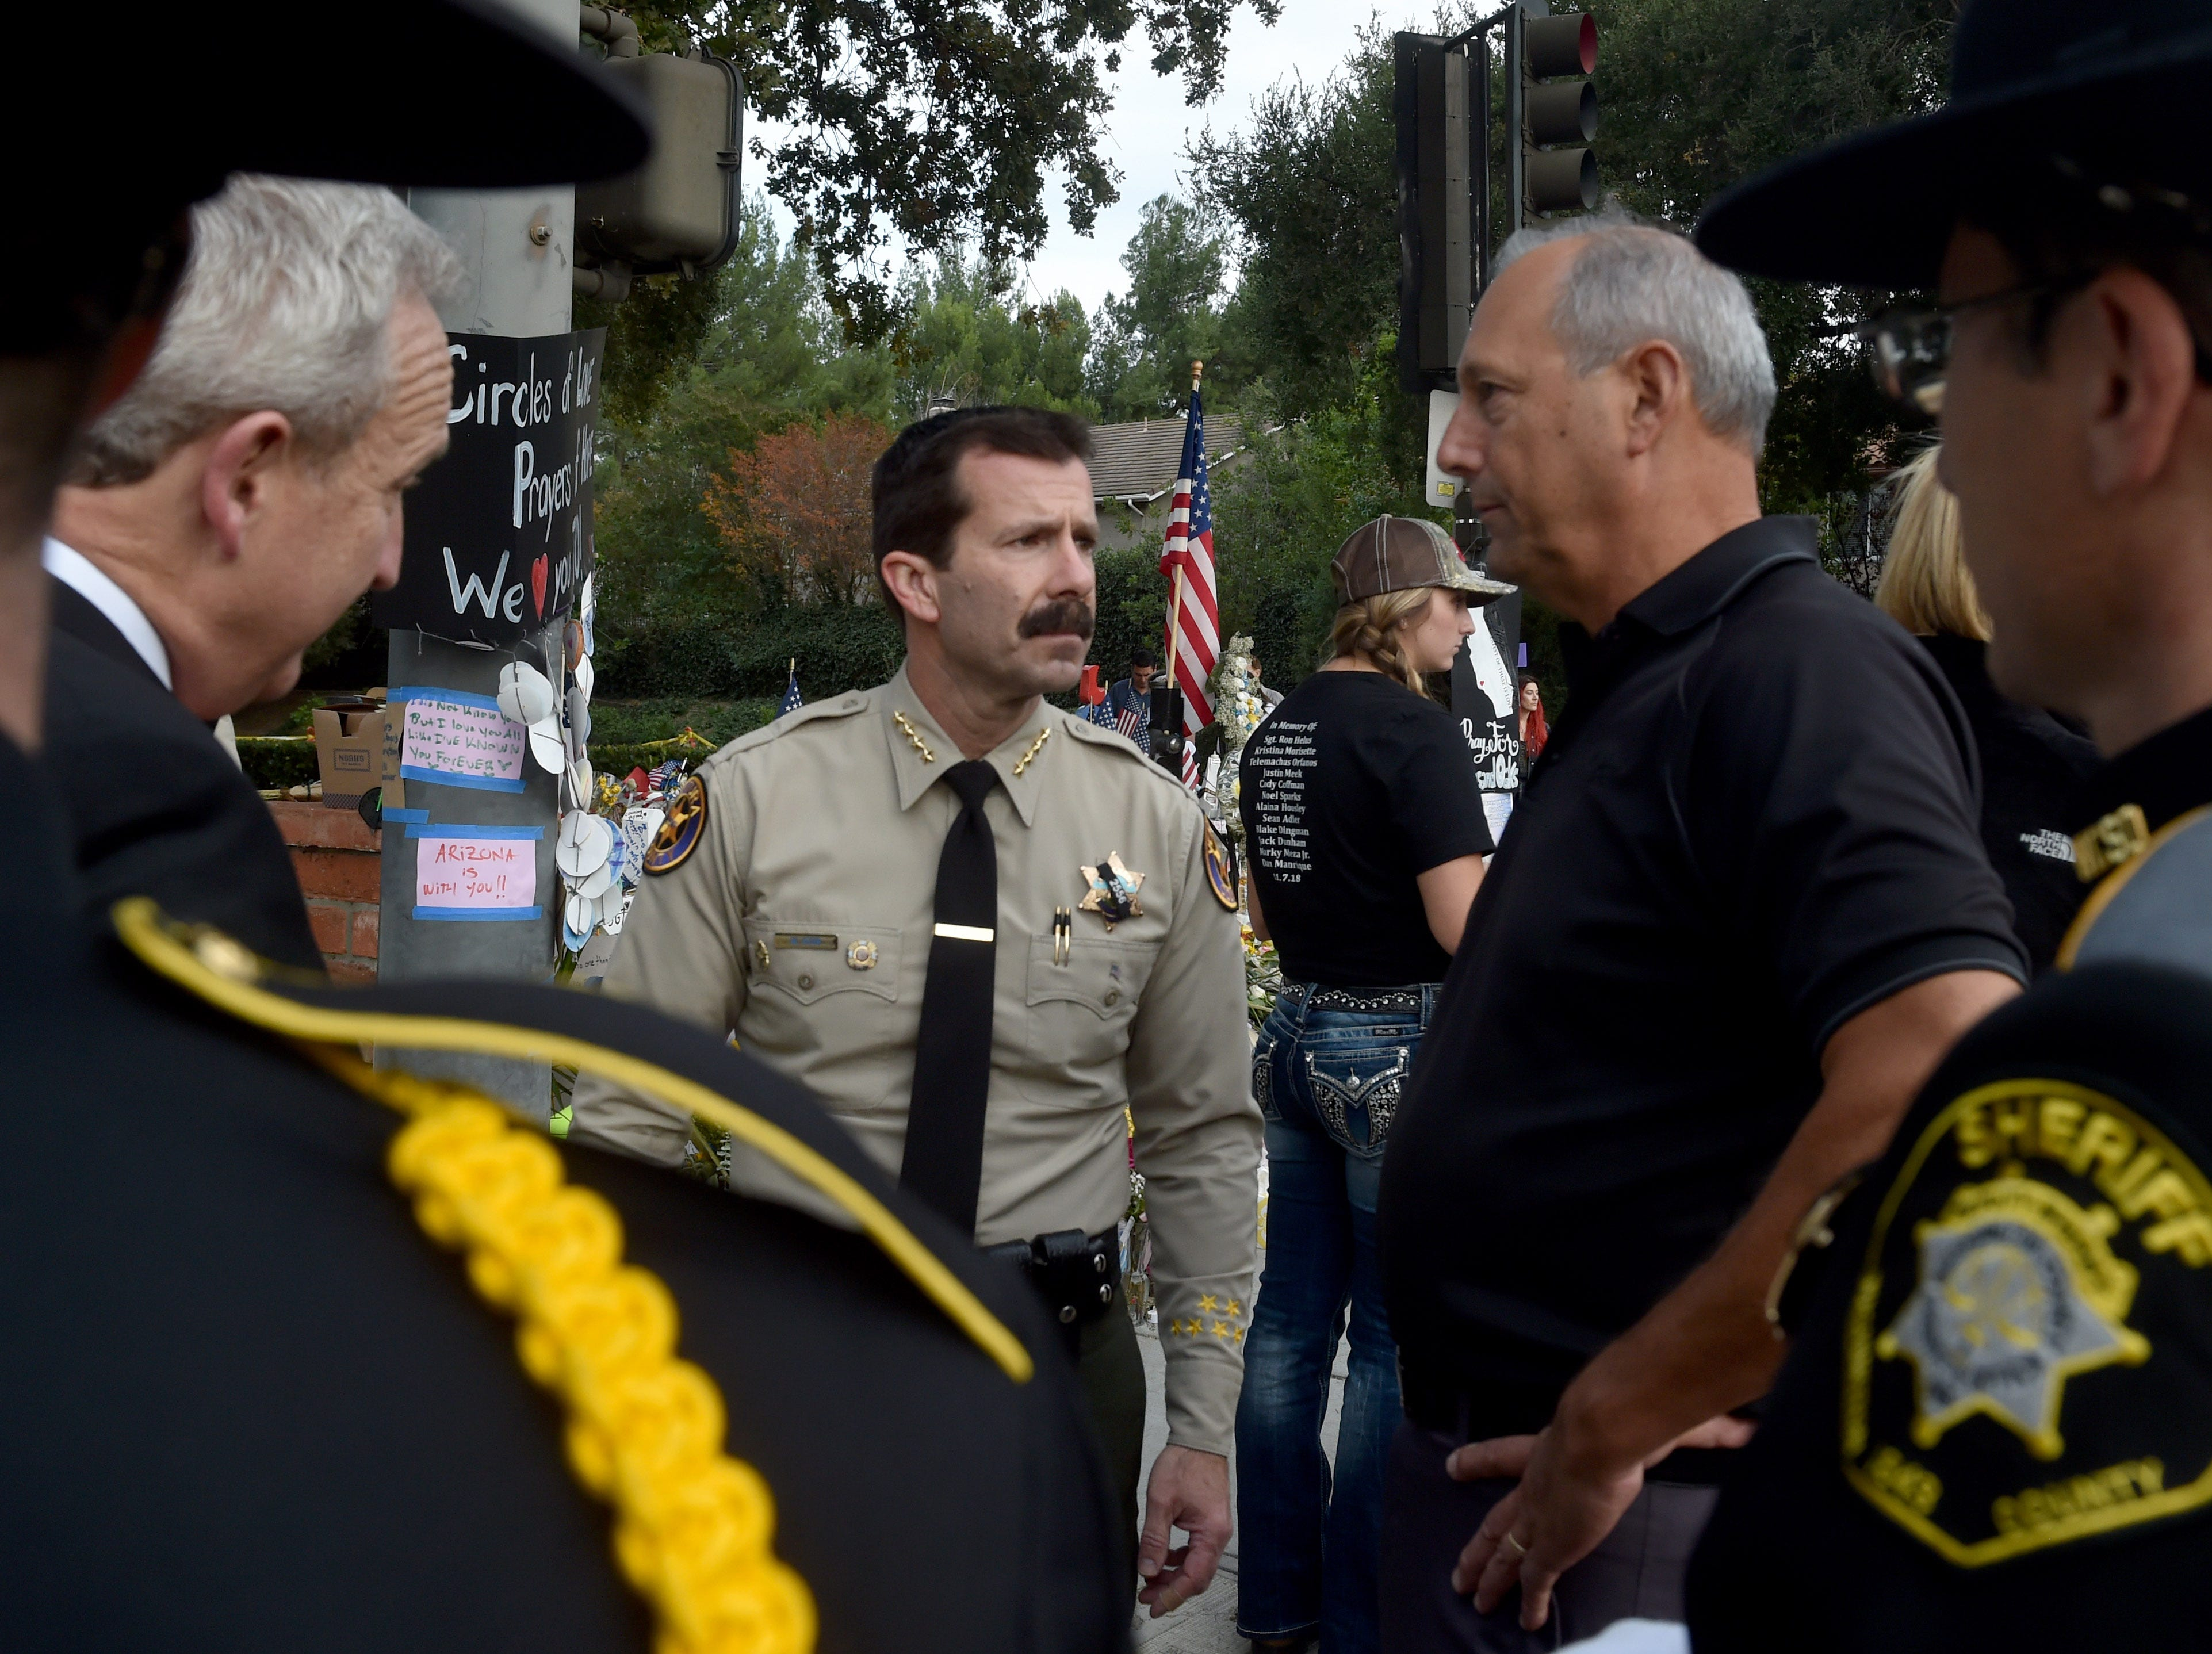 Ventura County Sheriff Bill Ayub speaks with Navy Capt. Roger Meek at a memorial wall near the Borderline Bar & Grill in Thousand Oaks, where 12 people were killed Nov. 7. Meek's son Justin Meek was among the victims.